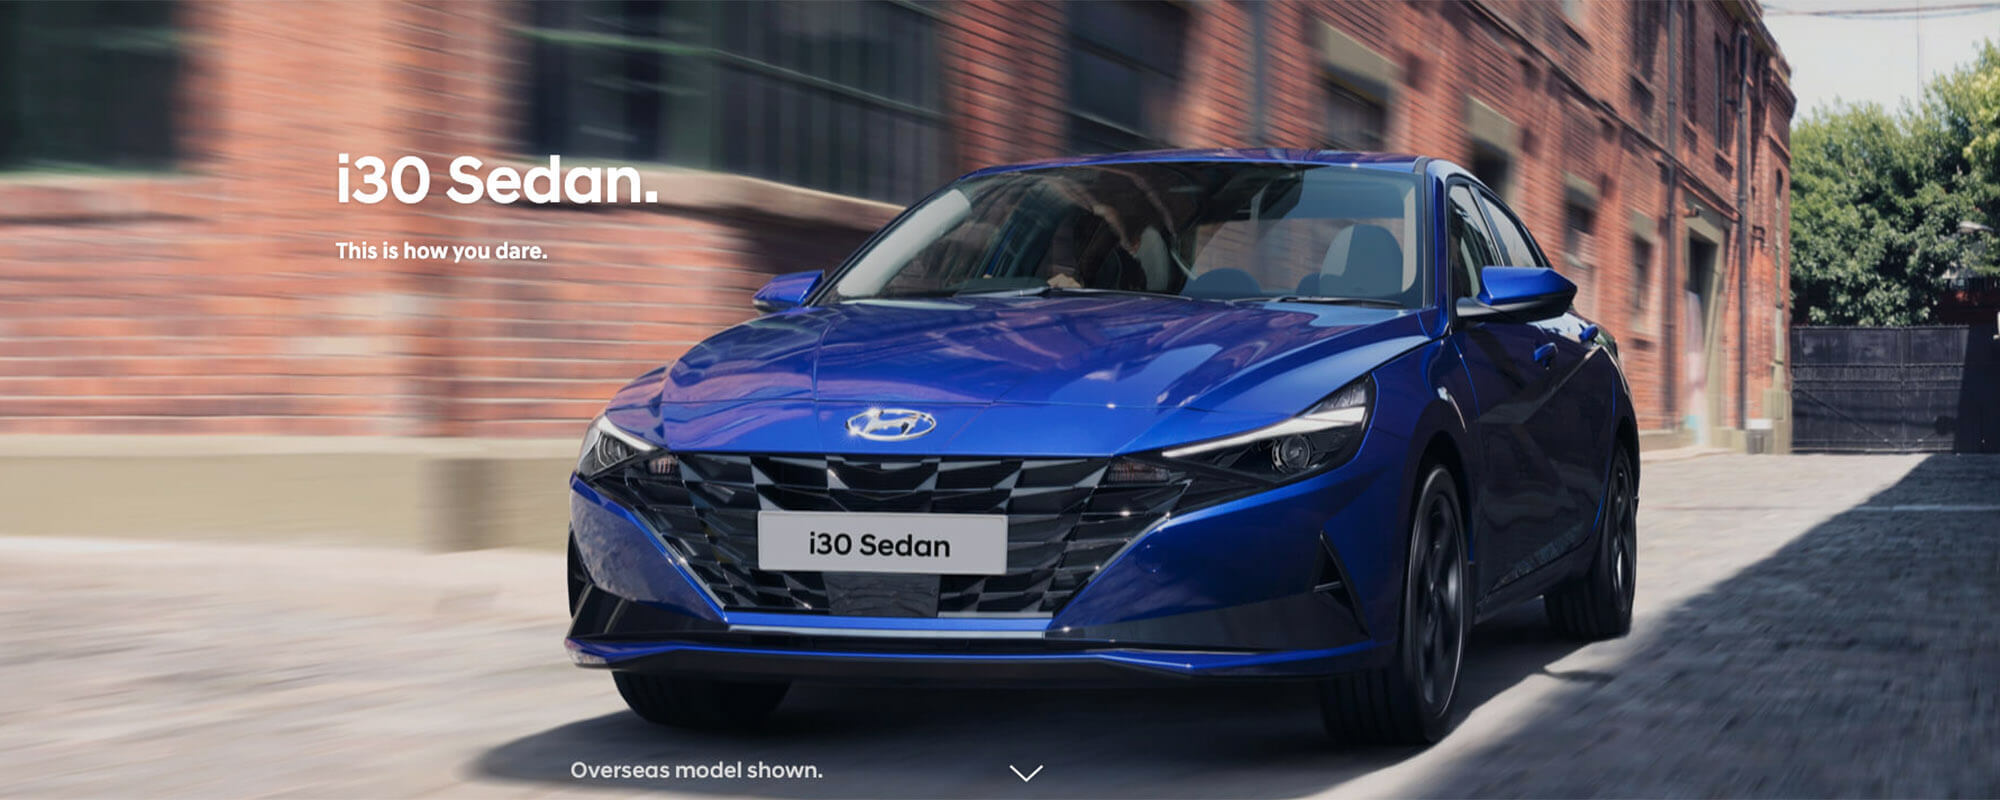 All-new Hyundai i30 Sedan. This is how you dare.